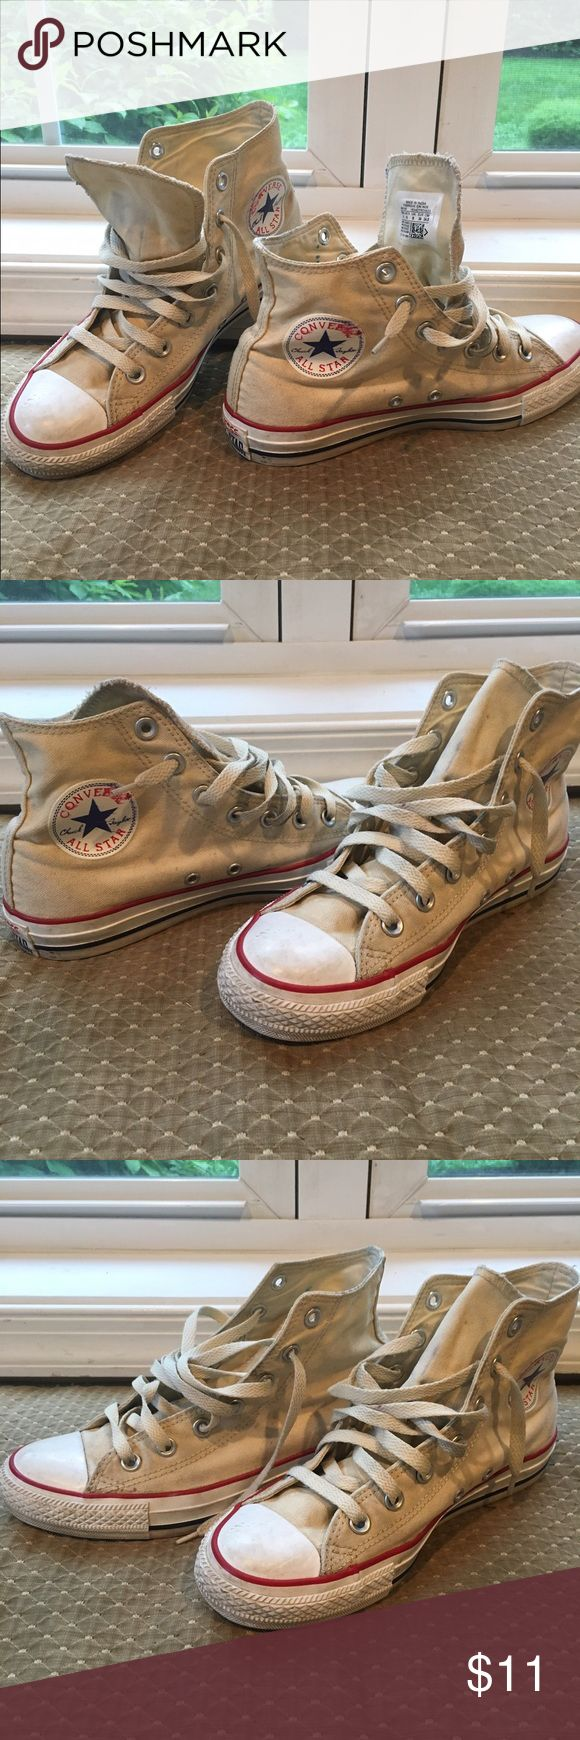 Off-White Converse High Tops Classic Chuck Taylor All Star Converse high tops in off-white canvas. Well-worn and scuffed as pictured. Women's 8, Men's 6 Converse Shoes Sneakers